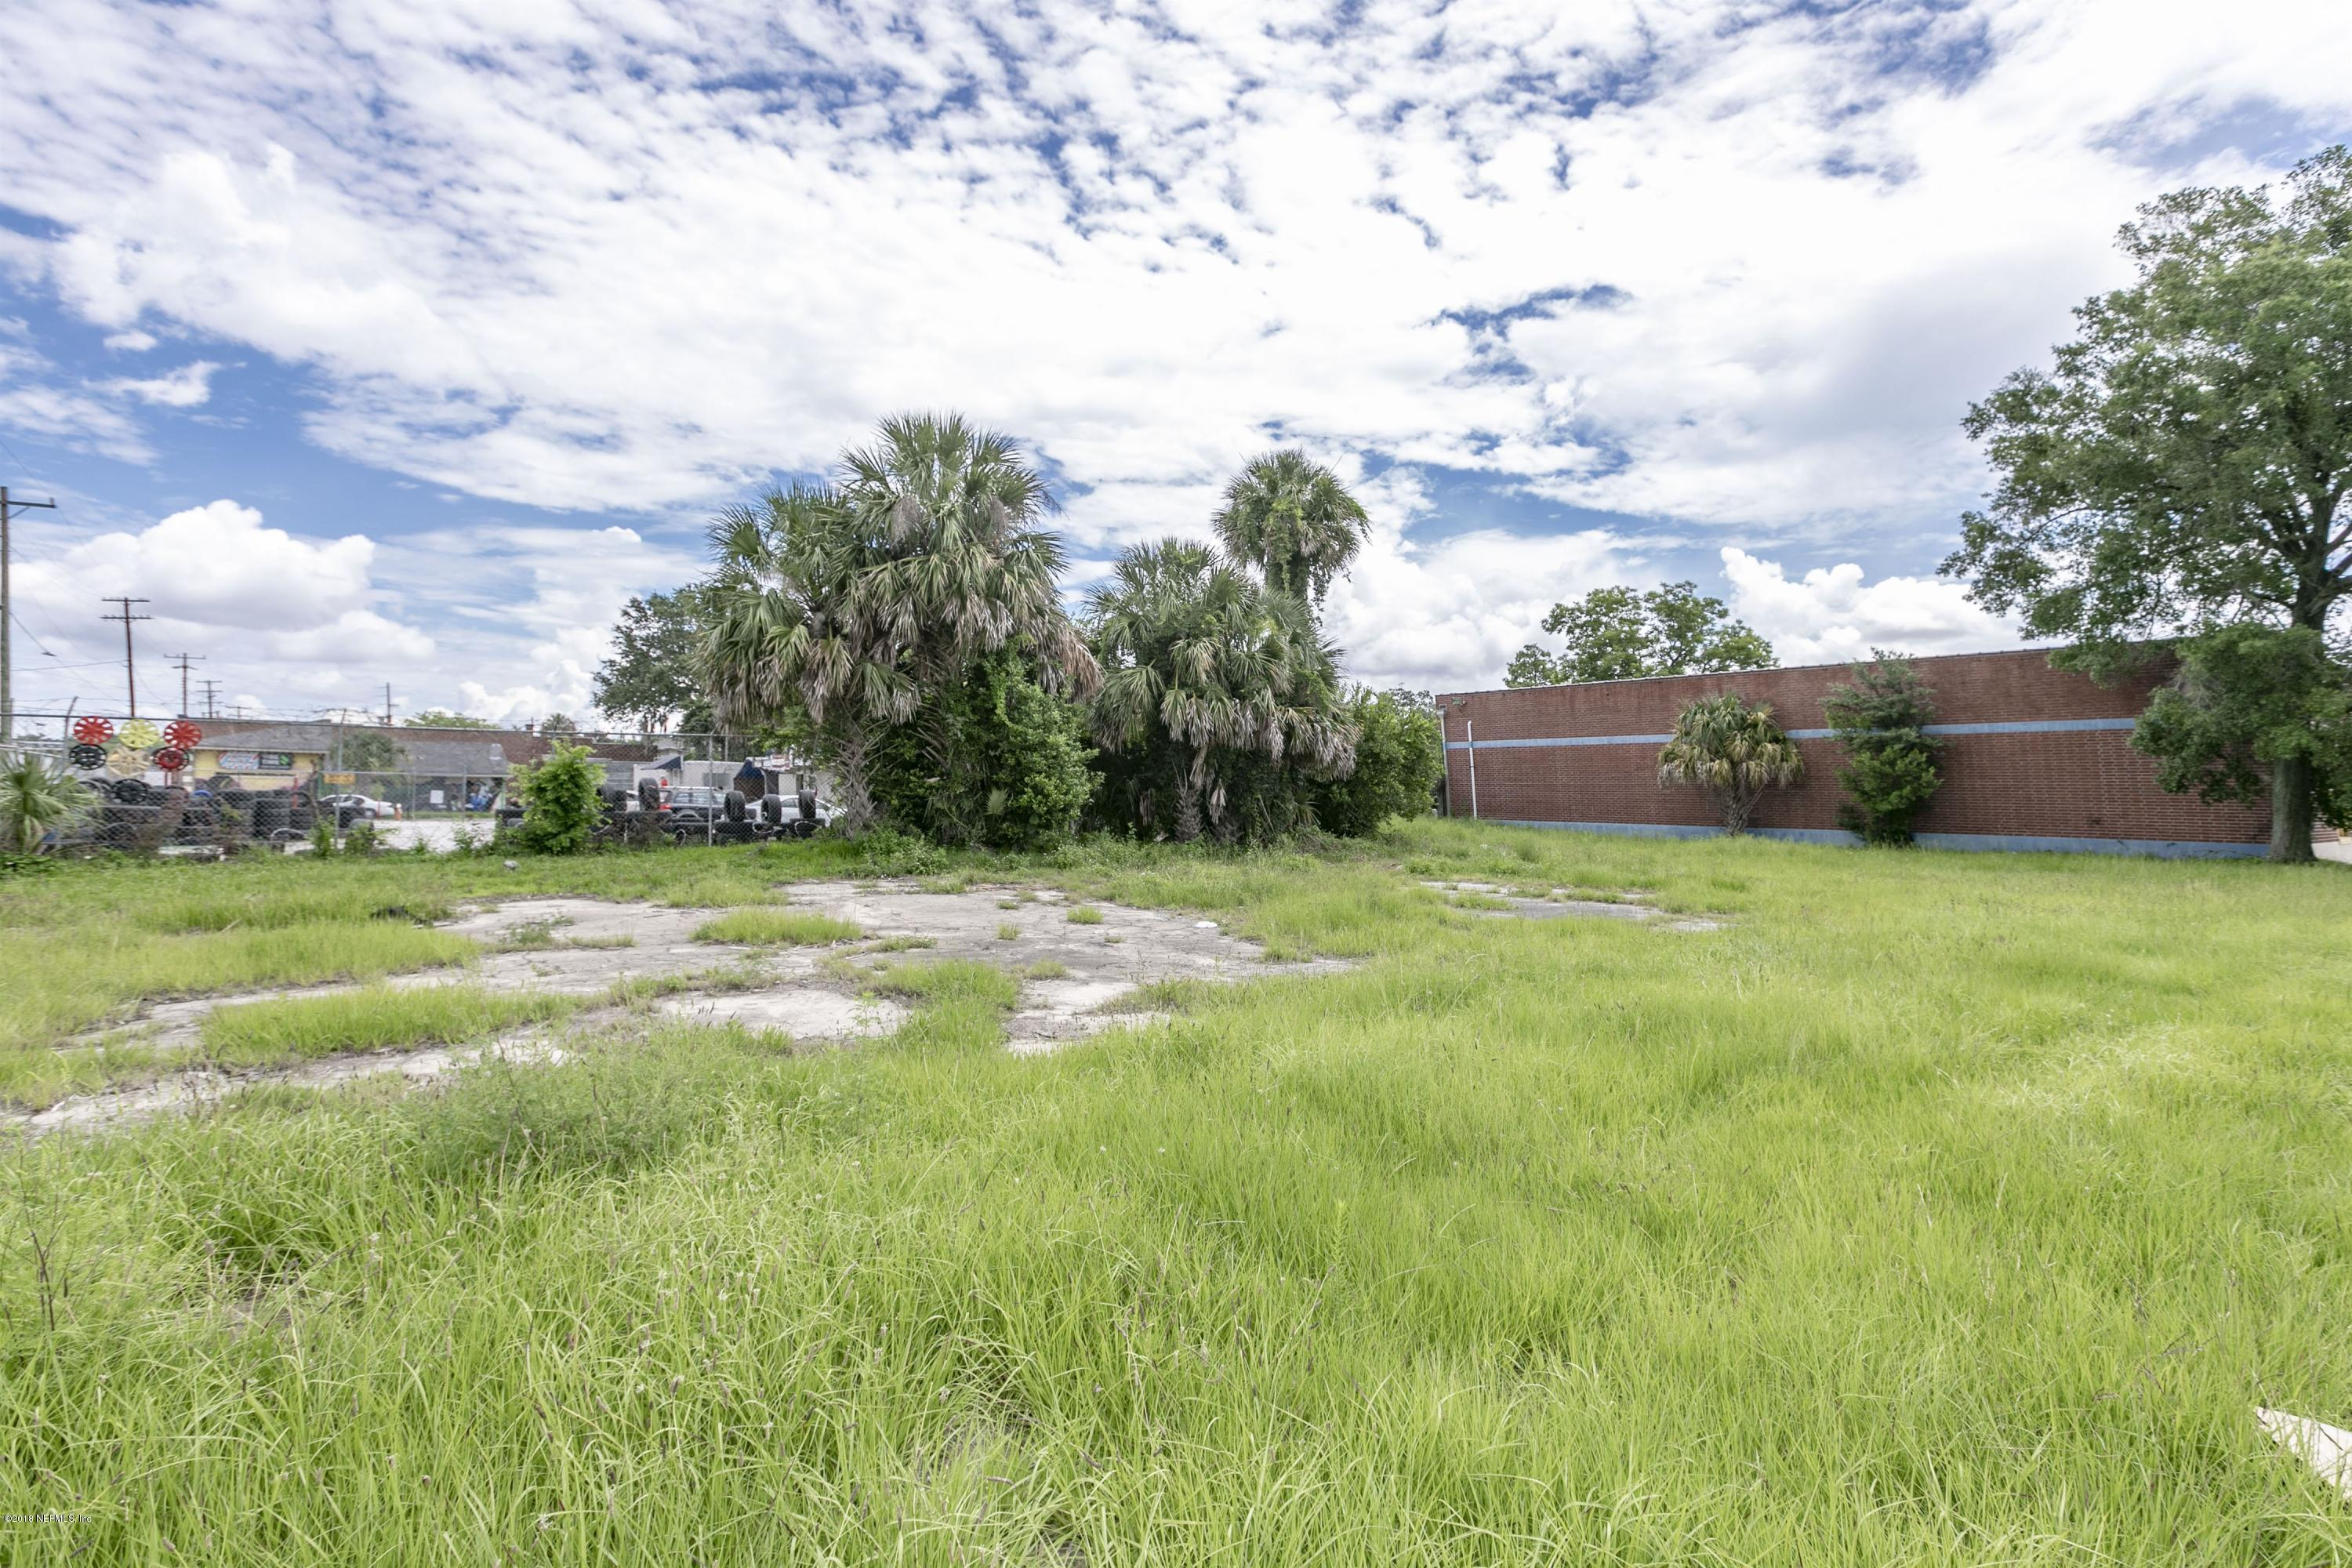 0 MAIN, JACKSONVILLE, FLORIDA 32202, ,Vacant land,For sale,MAIN,942135